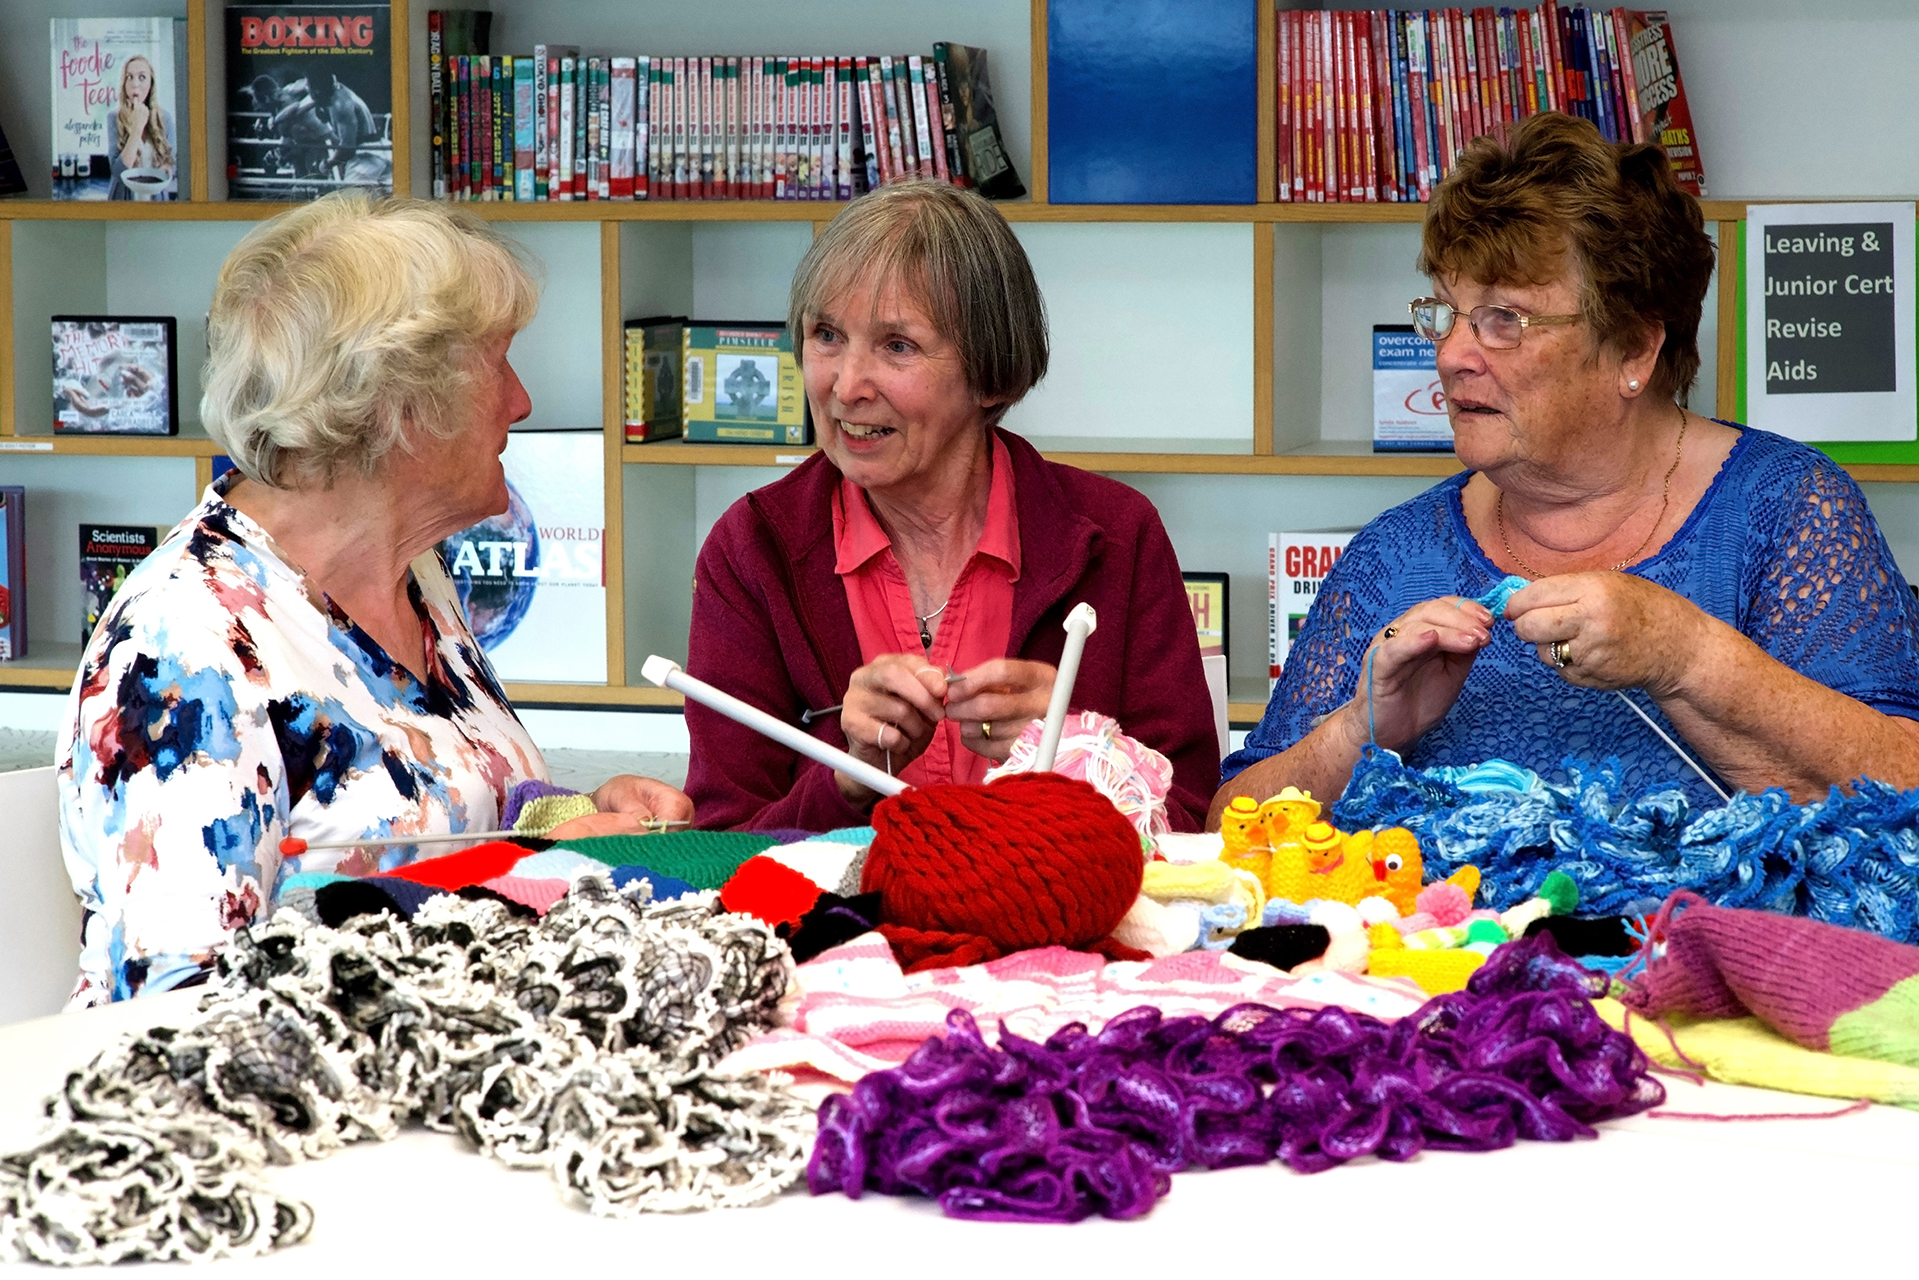 grannies having a chat while knitting